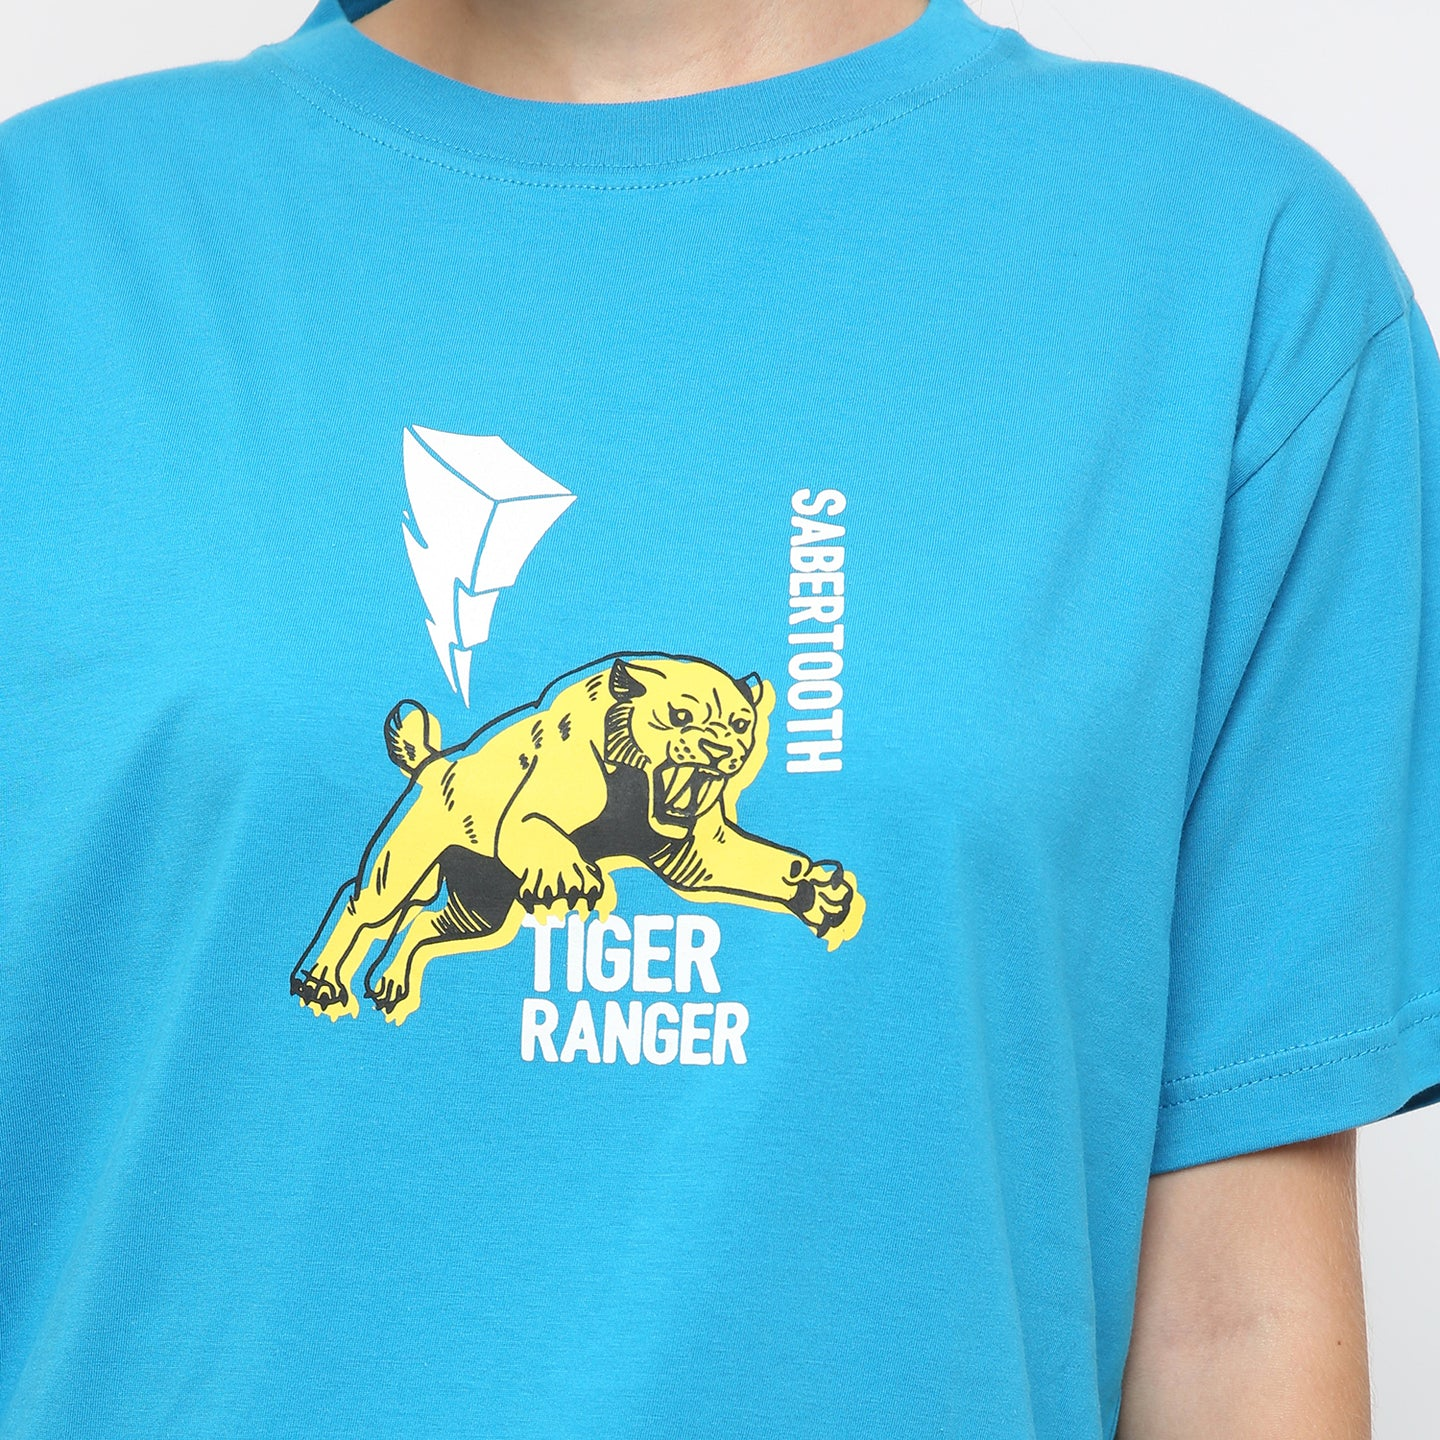 T-shirt Tiger Ranger Short Sleeve Blue